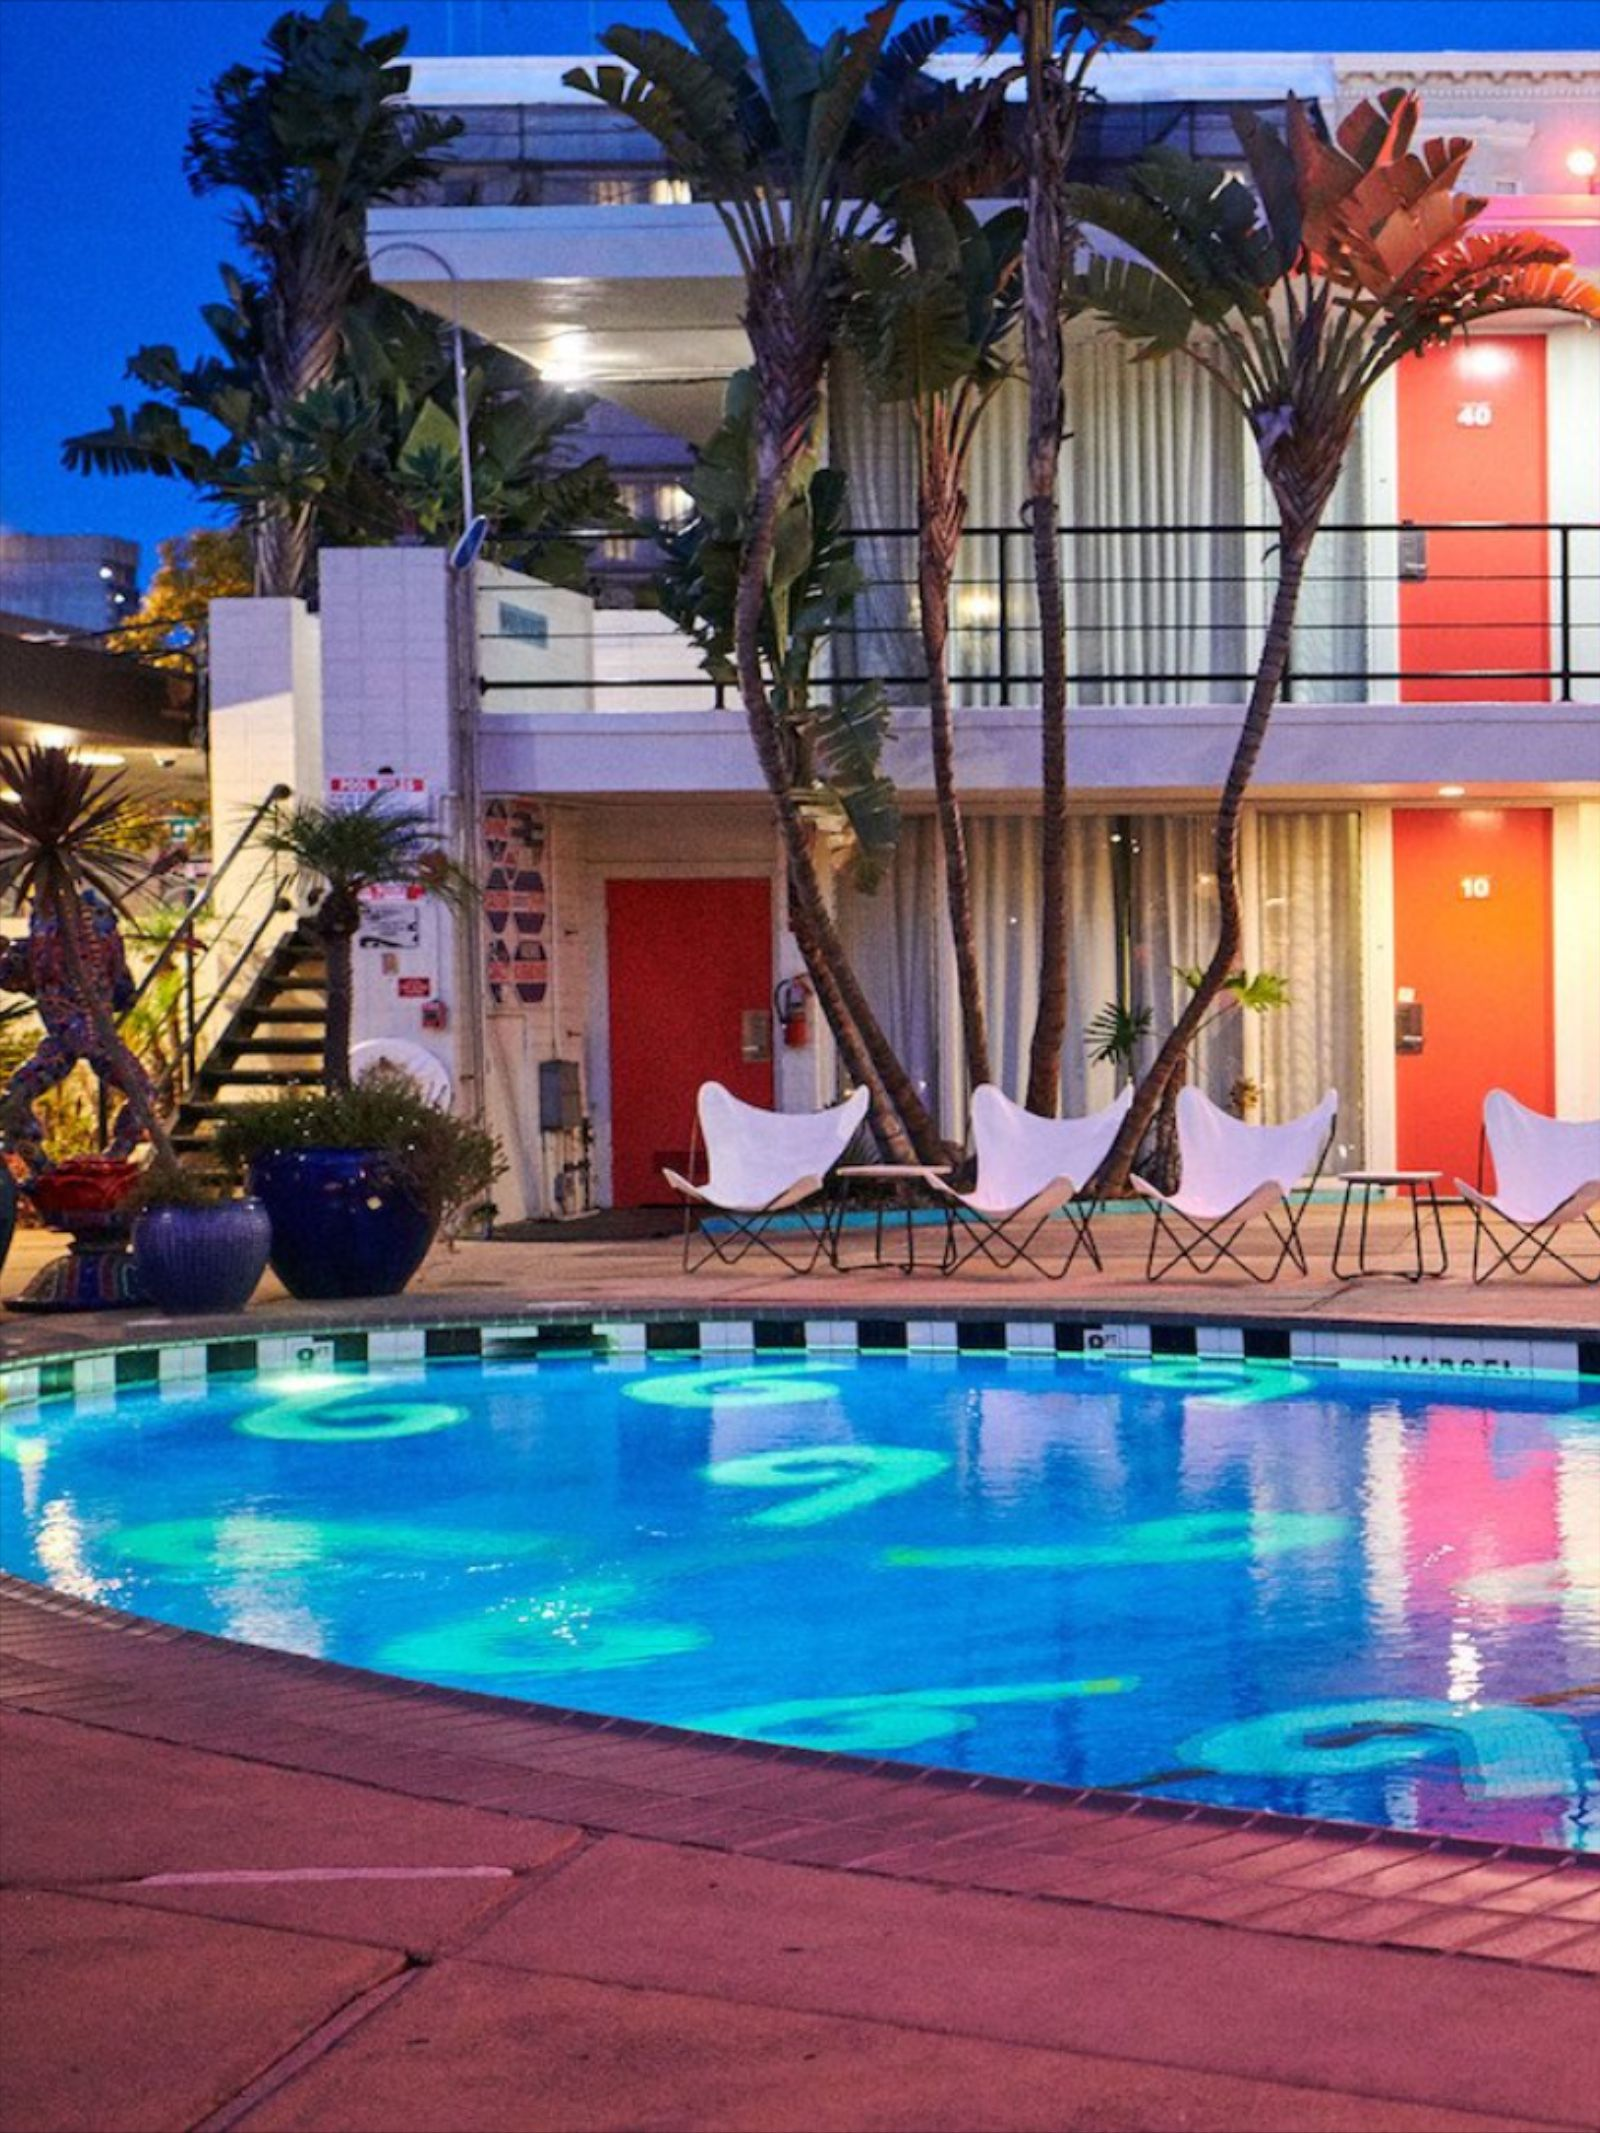 The Best Affordable Hotels In San Francisco Suitcase Magazine Affordable Hotels Hotel Hotel Inspiration